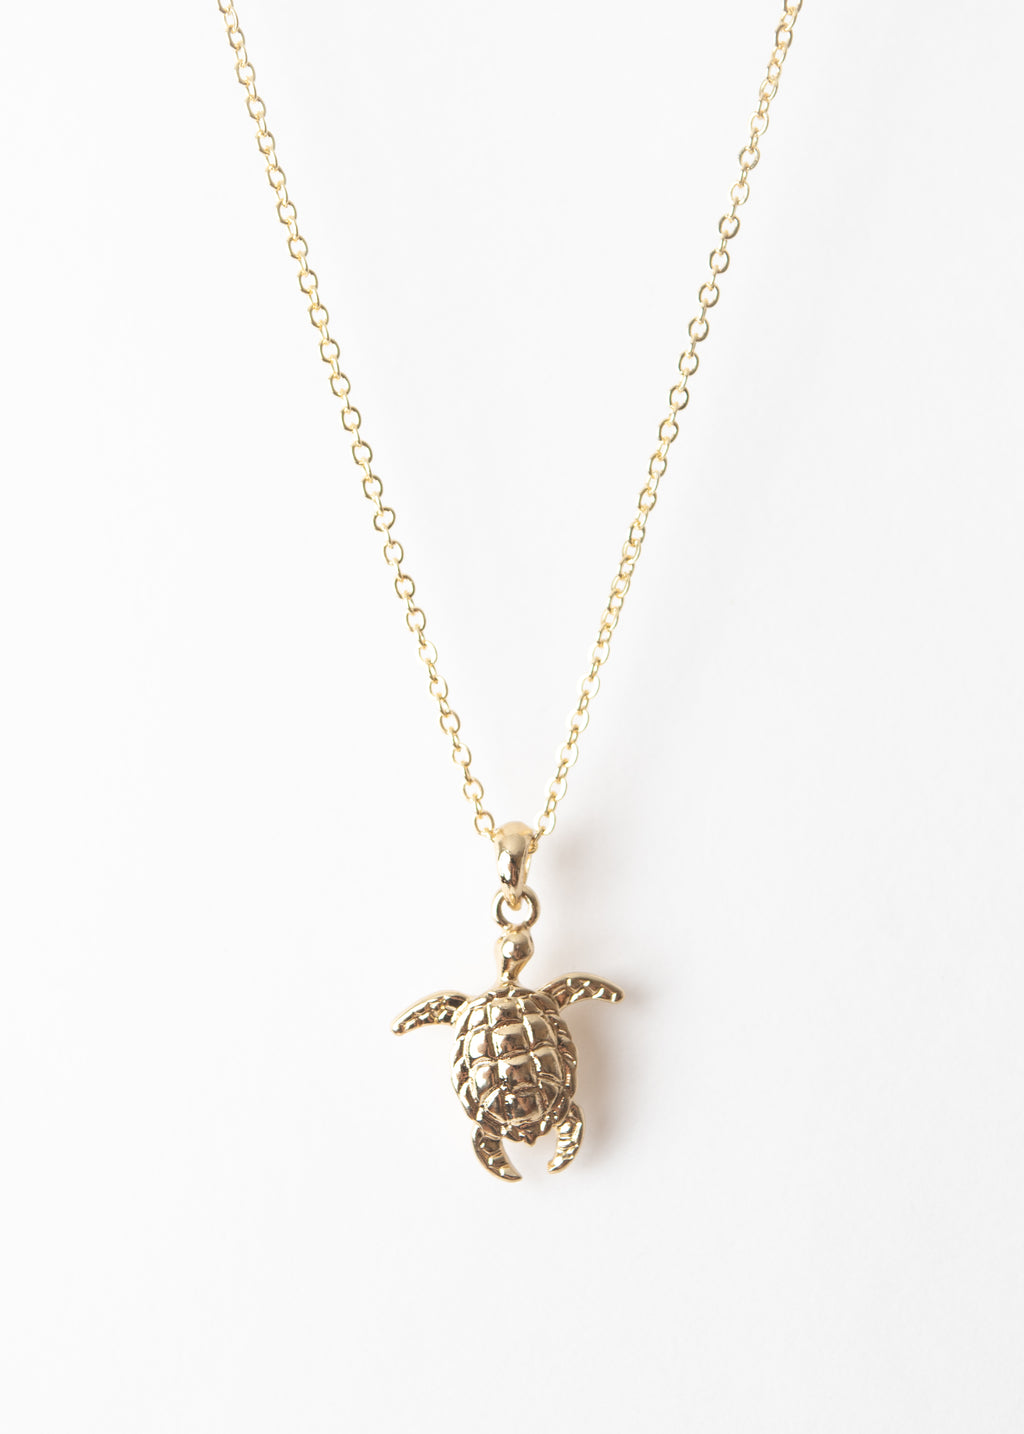 Beck & Boosh Sea Turtle Long Necklace Plated Gold Sea Turtle Pendant Hangs From Long Plated Gold Chain